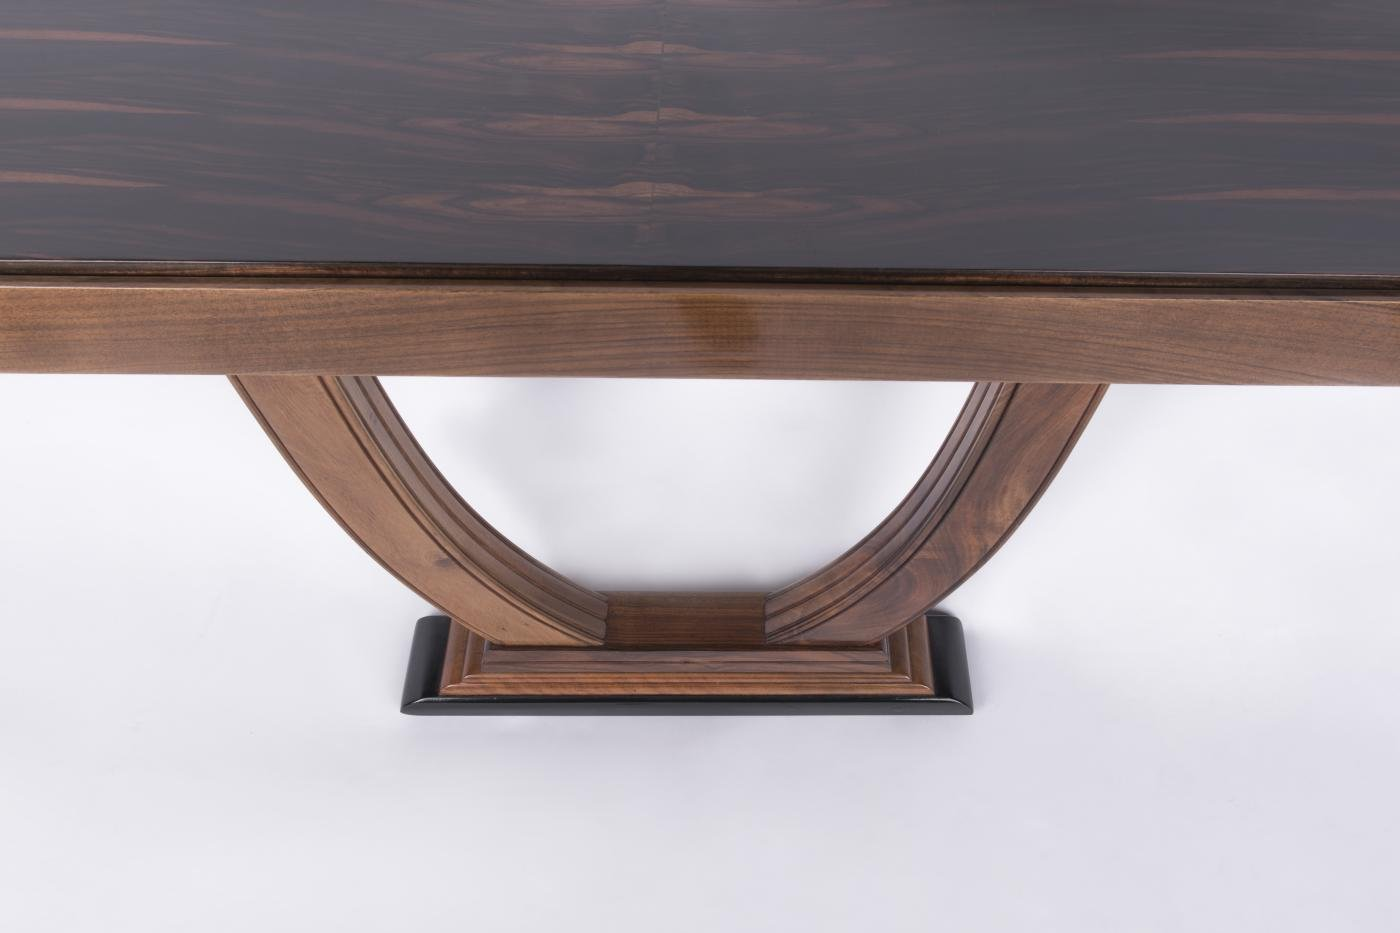 Art deco console table 1930s for sale at pamono for Miroir art deco 1930